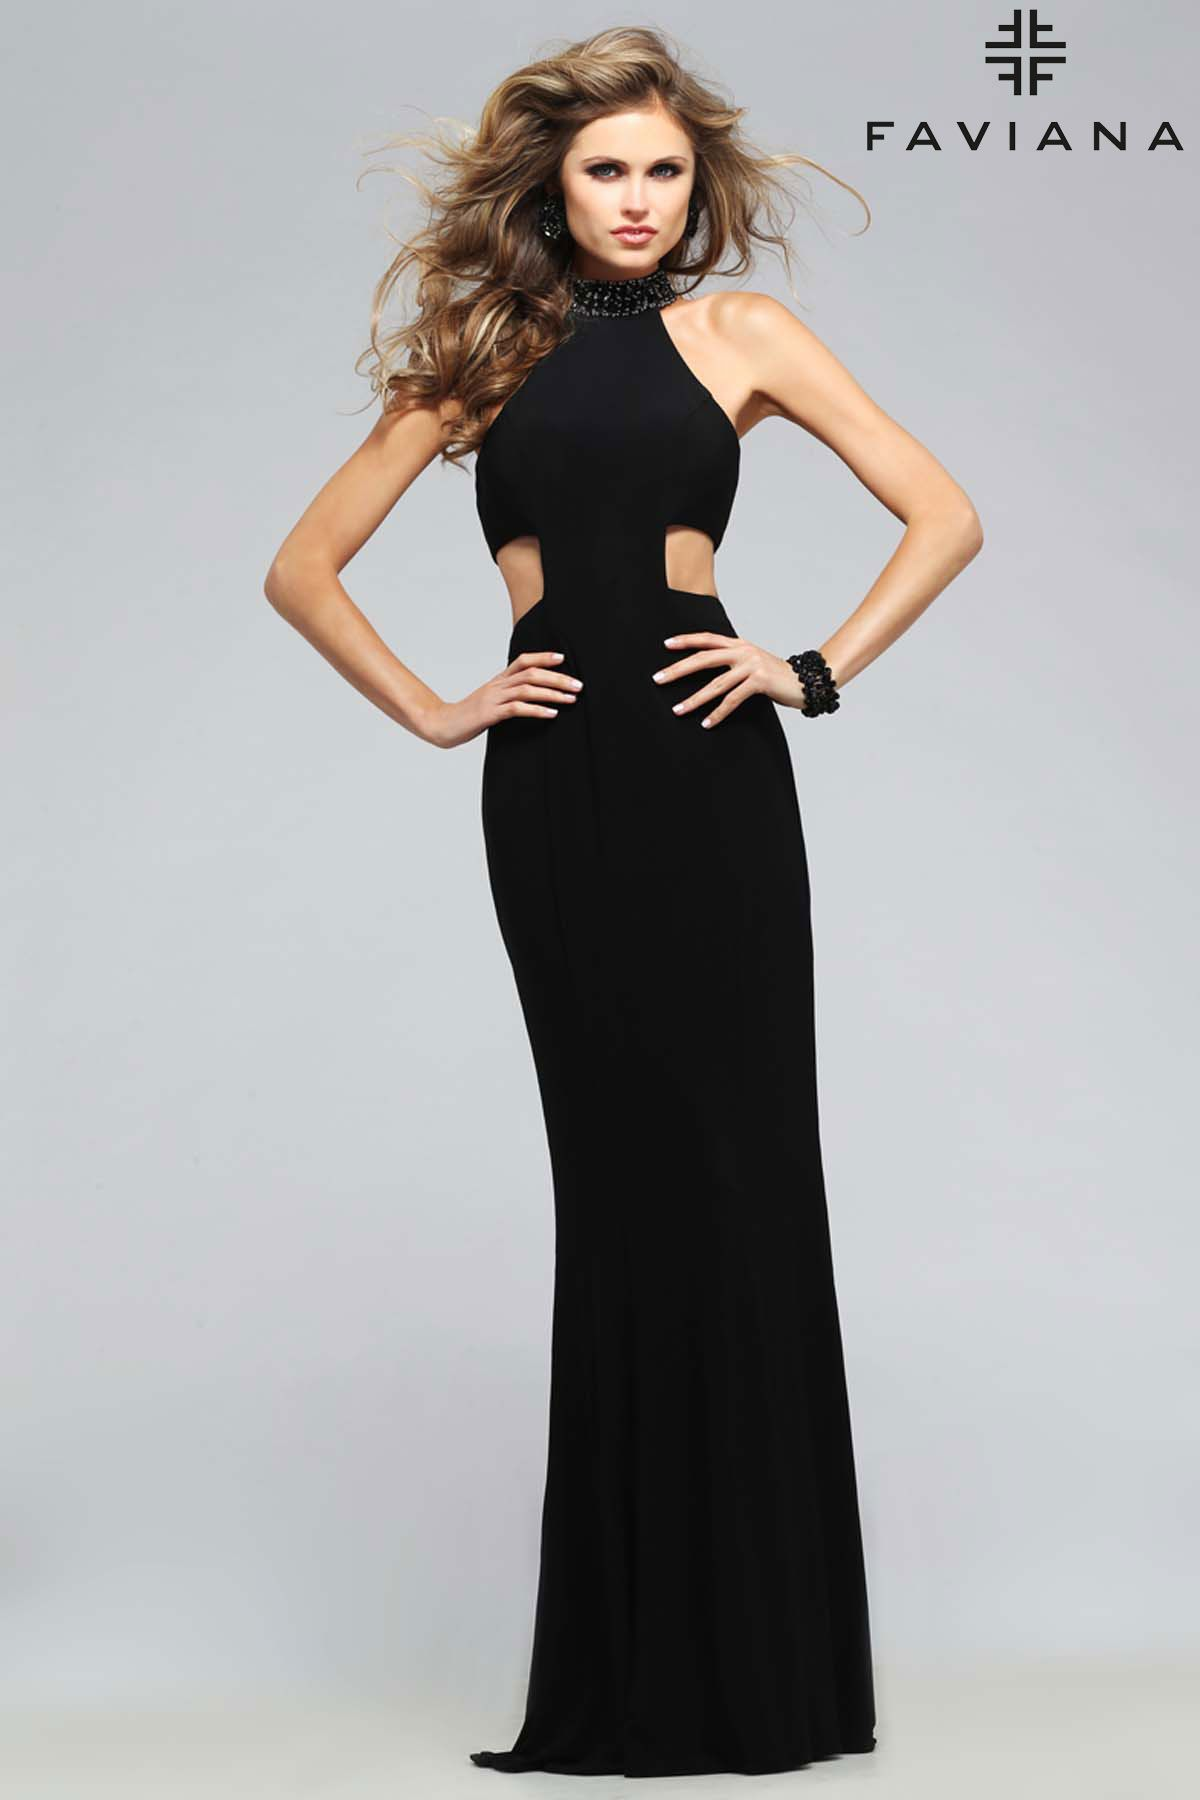 Jersey jewel neck with back strap details faviana style